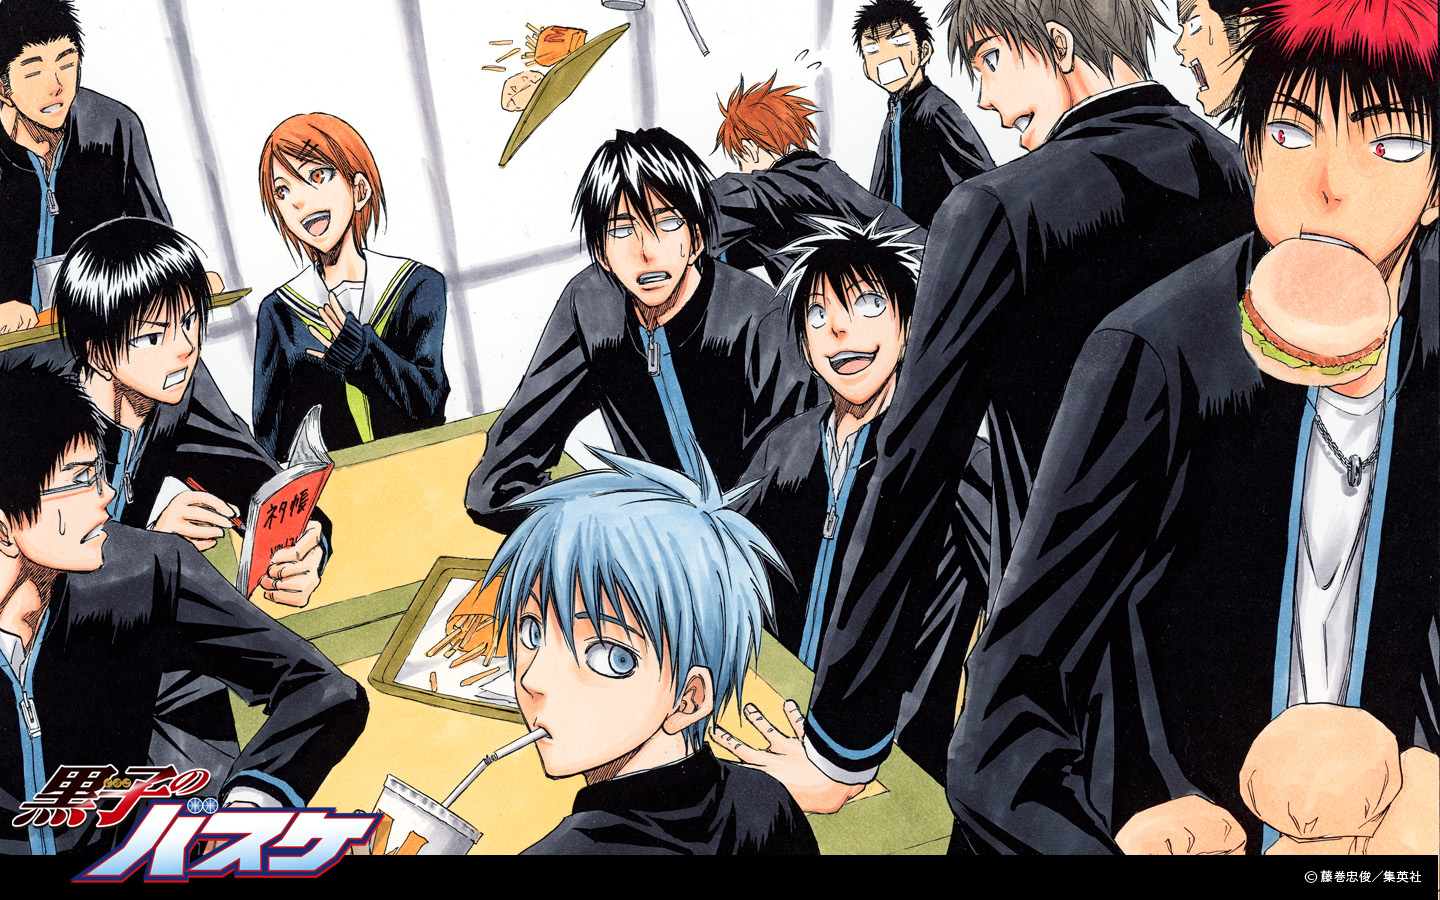 Kuroko No Basket Wallpaper Hd Posted By Samantha Walker